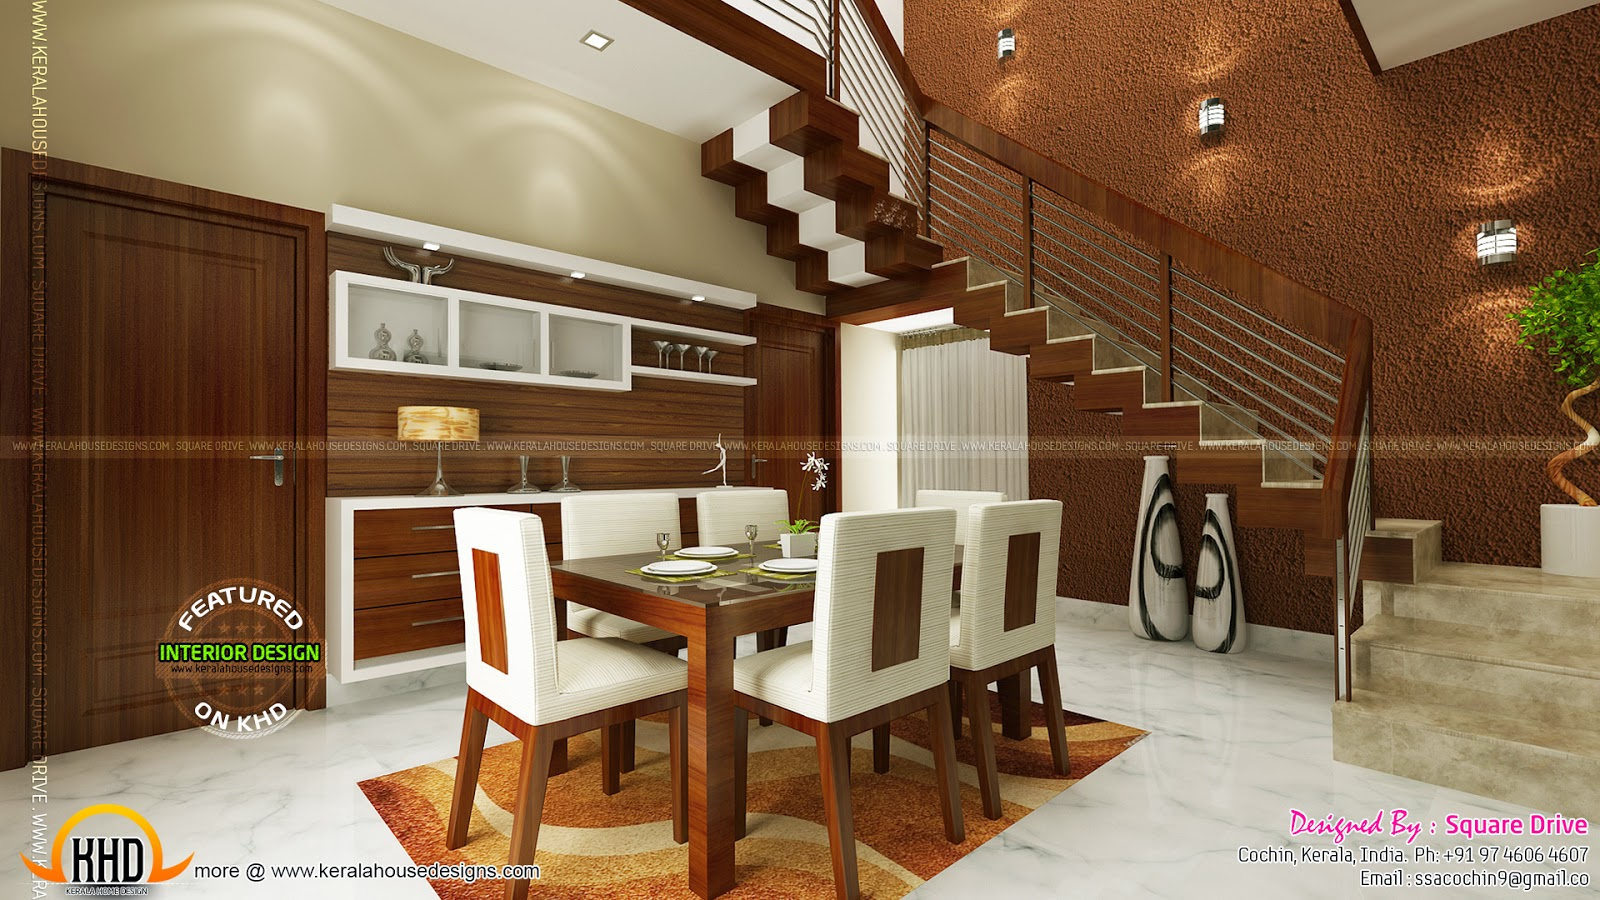 Cochin interior design kerala home design and floor plans Images of home interior